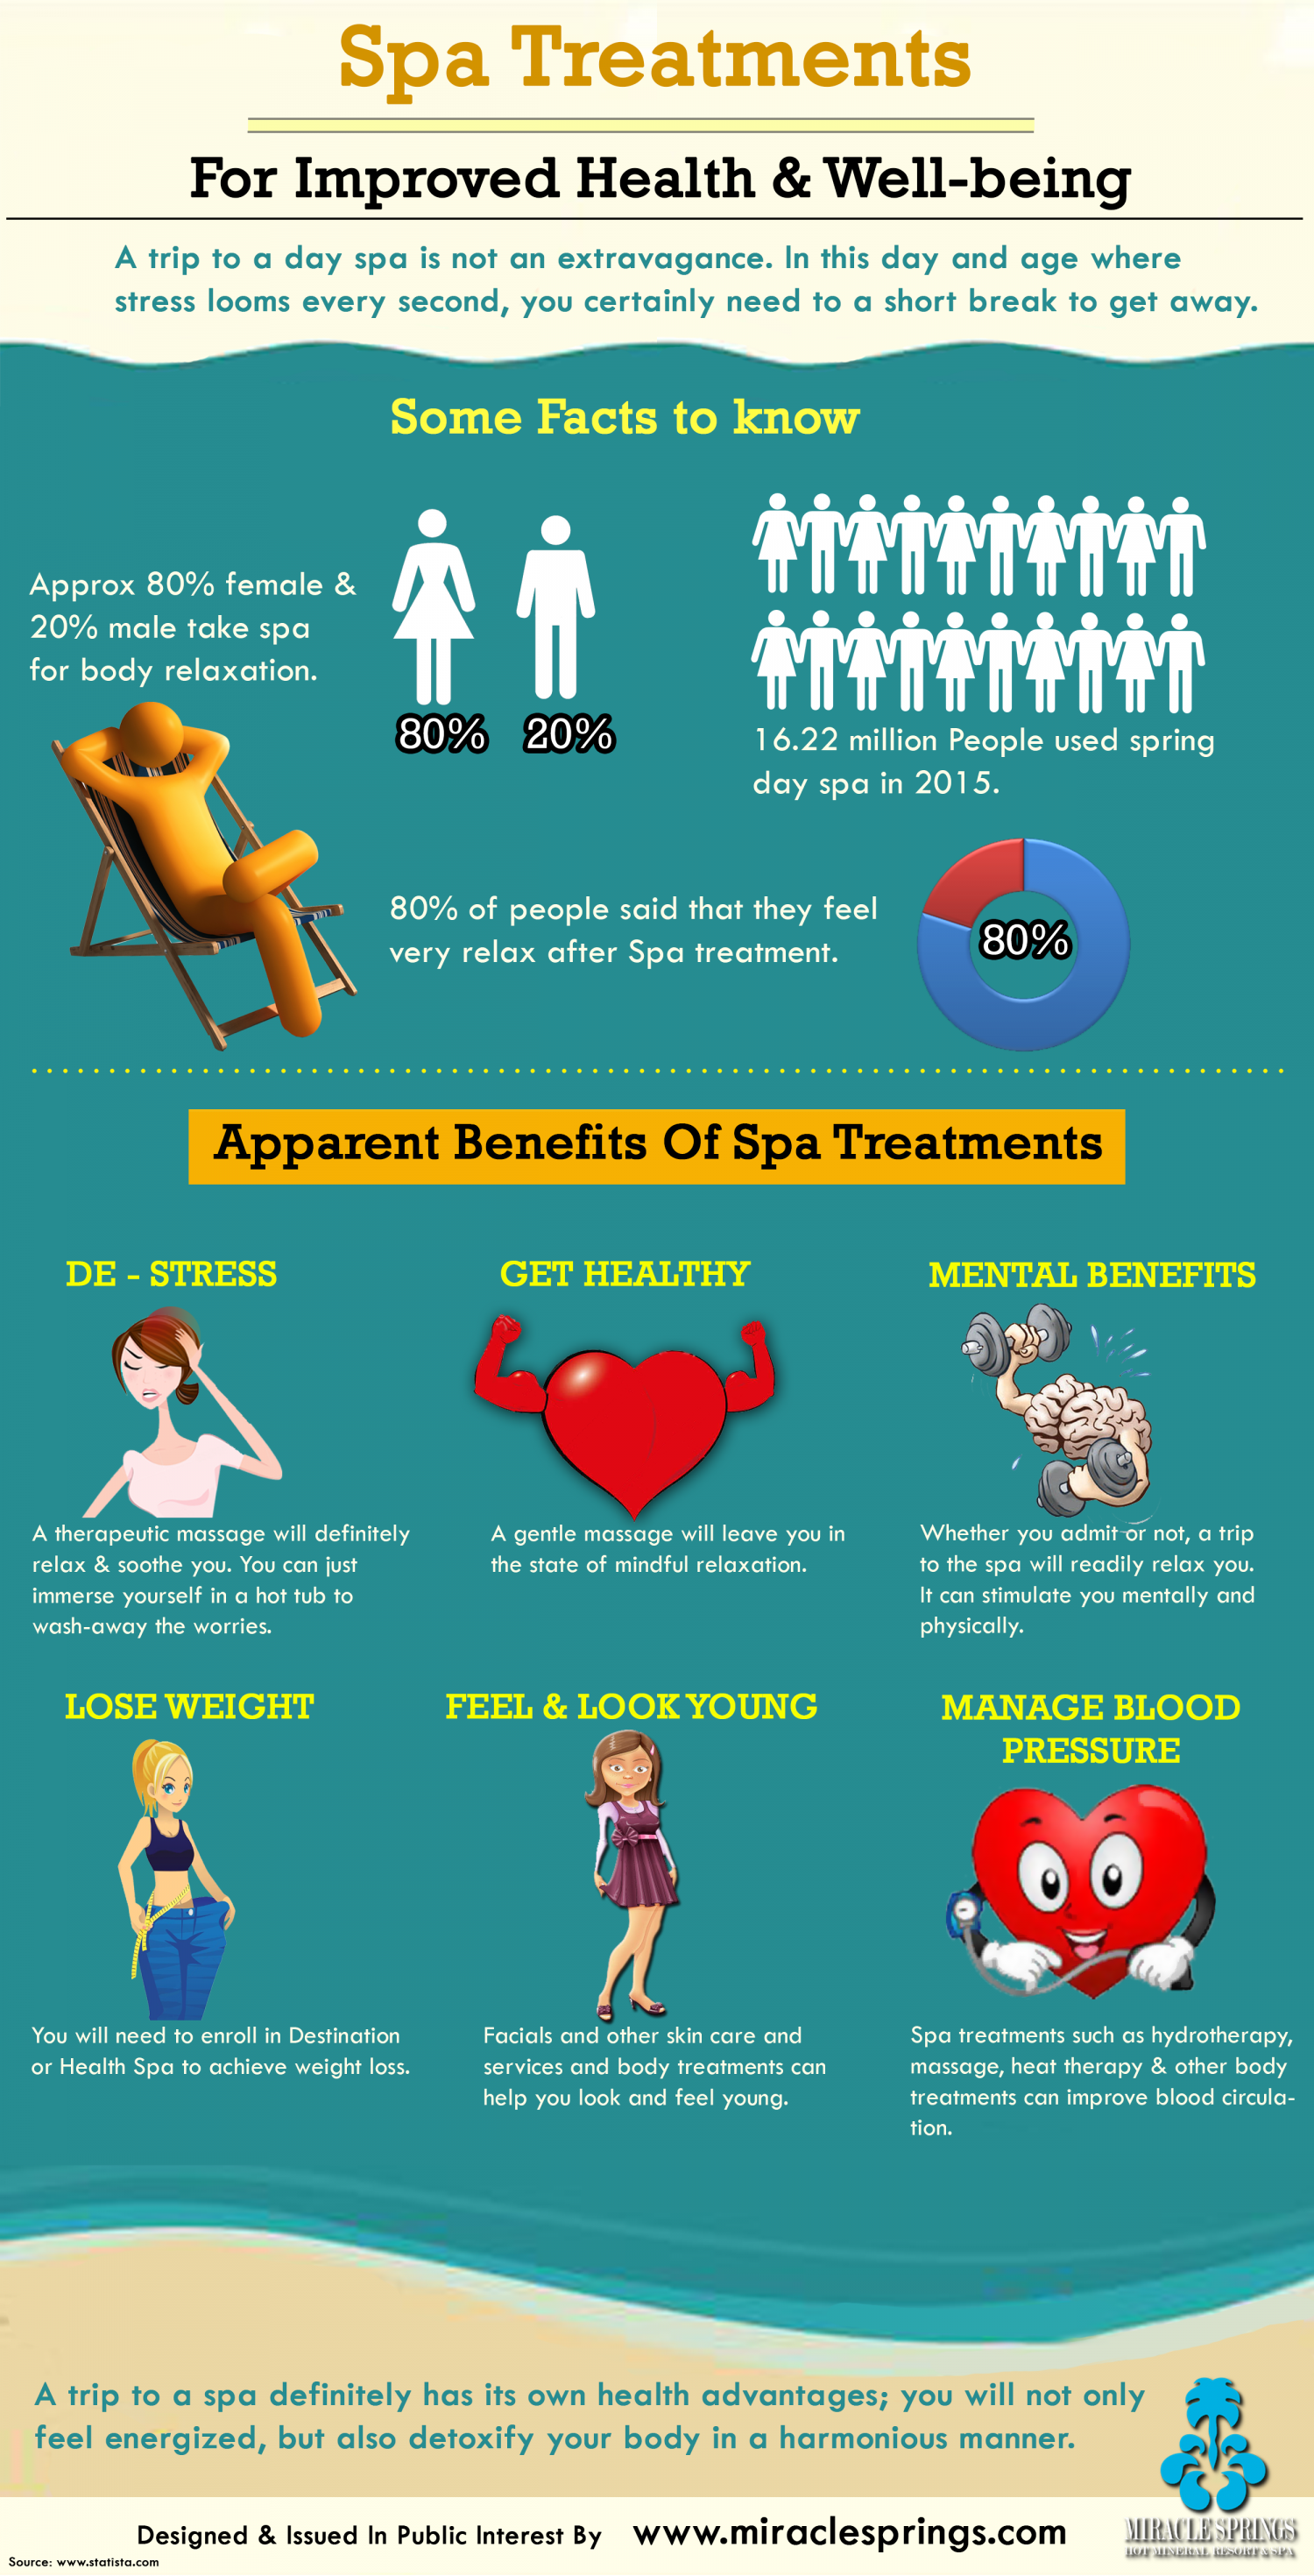 Spa Treatments for Improved Health & Well-being Infographic